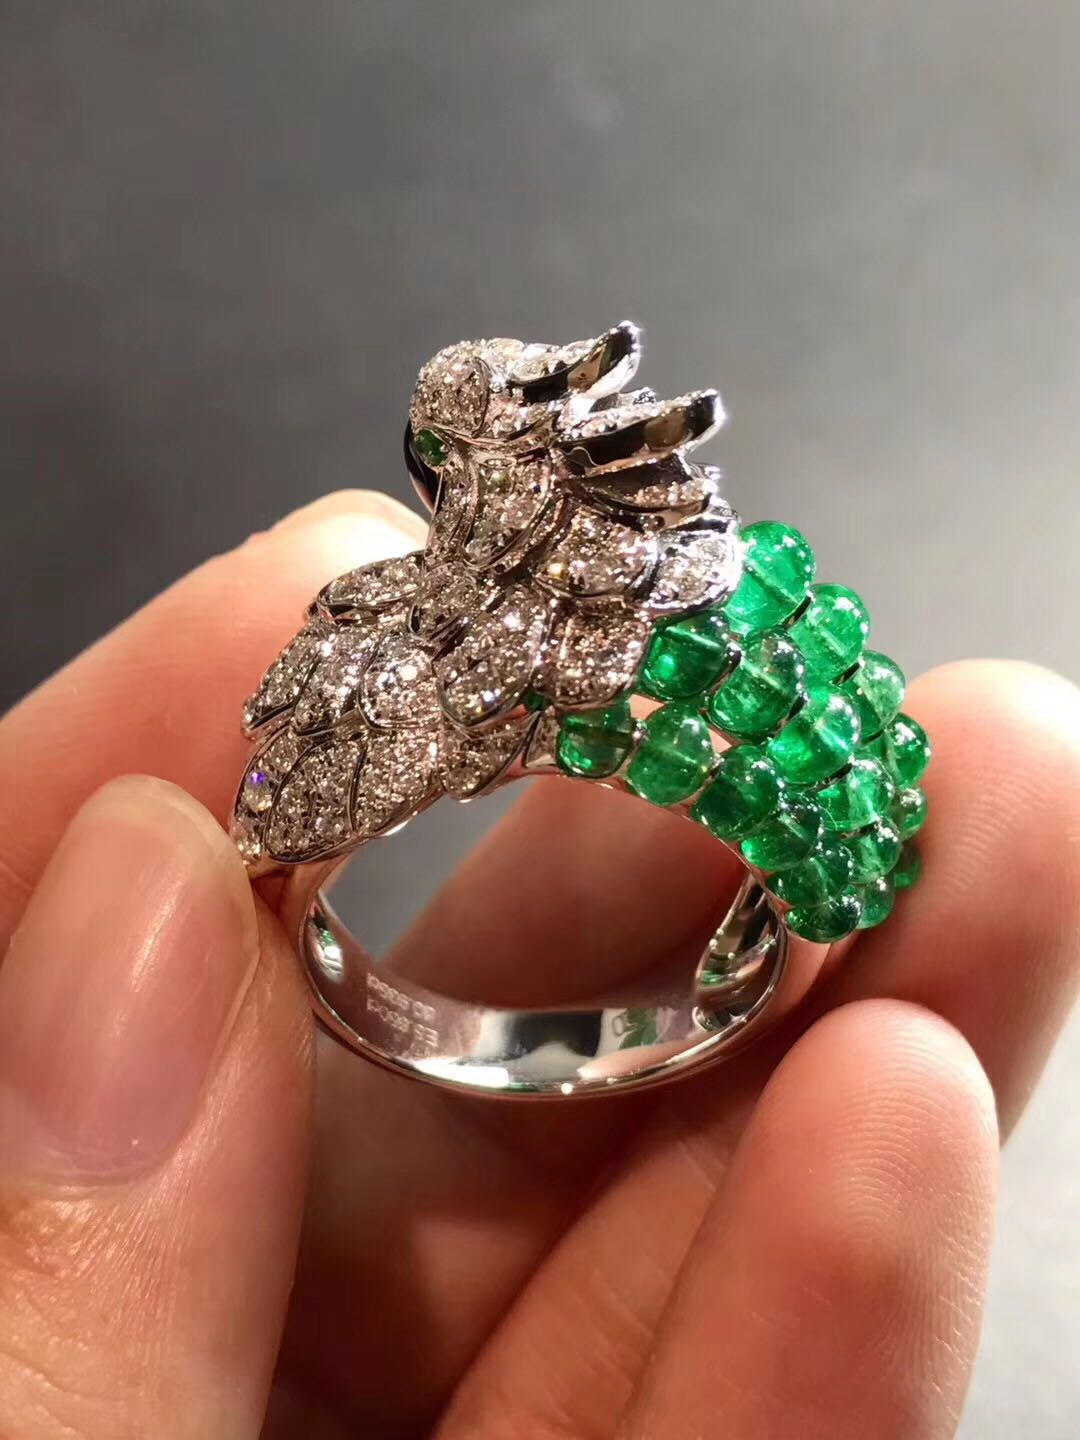 Cartier Les Oiseaux Libérés Parrot ring 18K white gold with gray mother-of pearl & emeralds beads